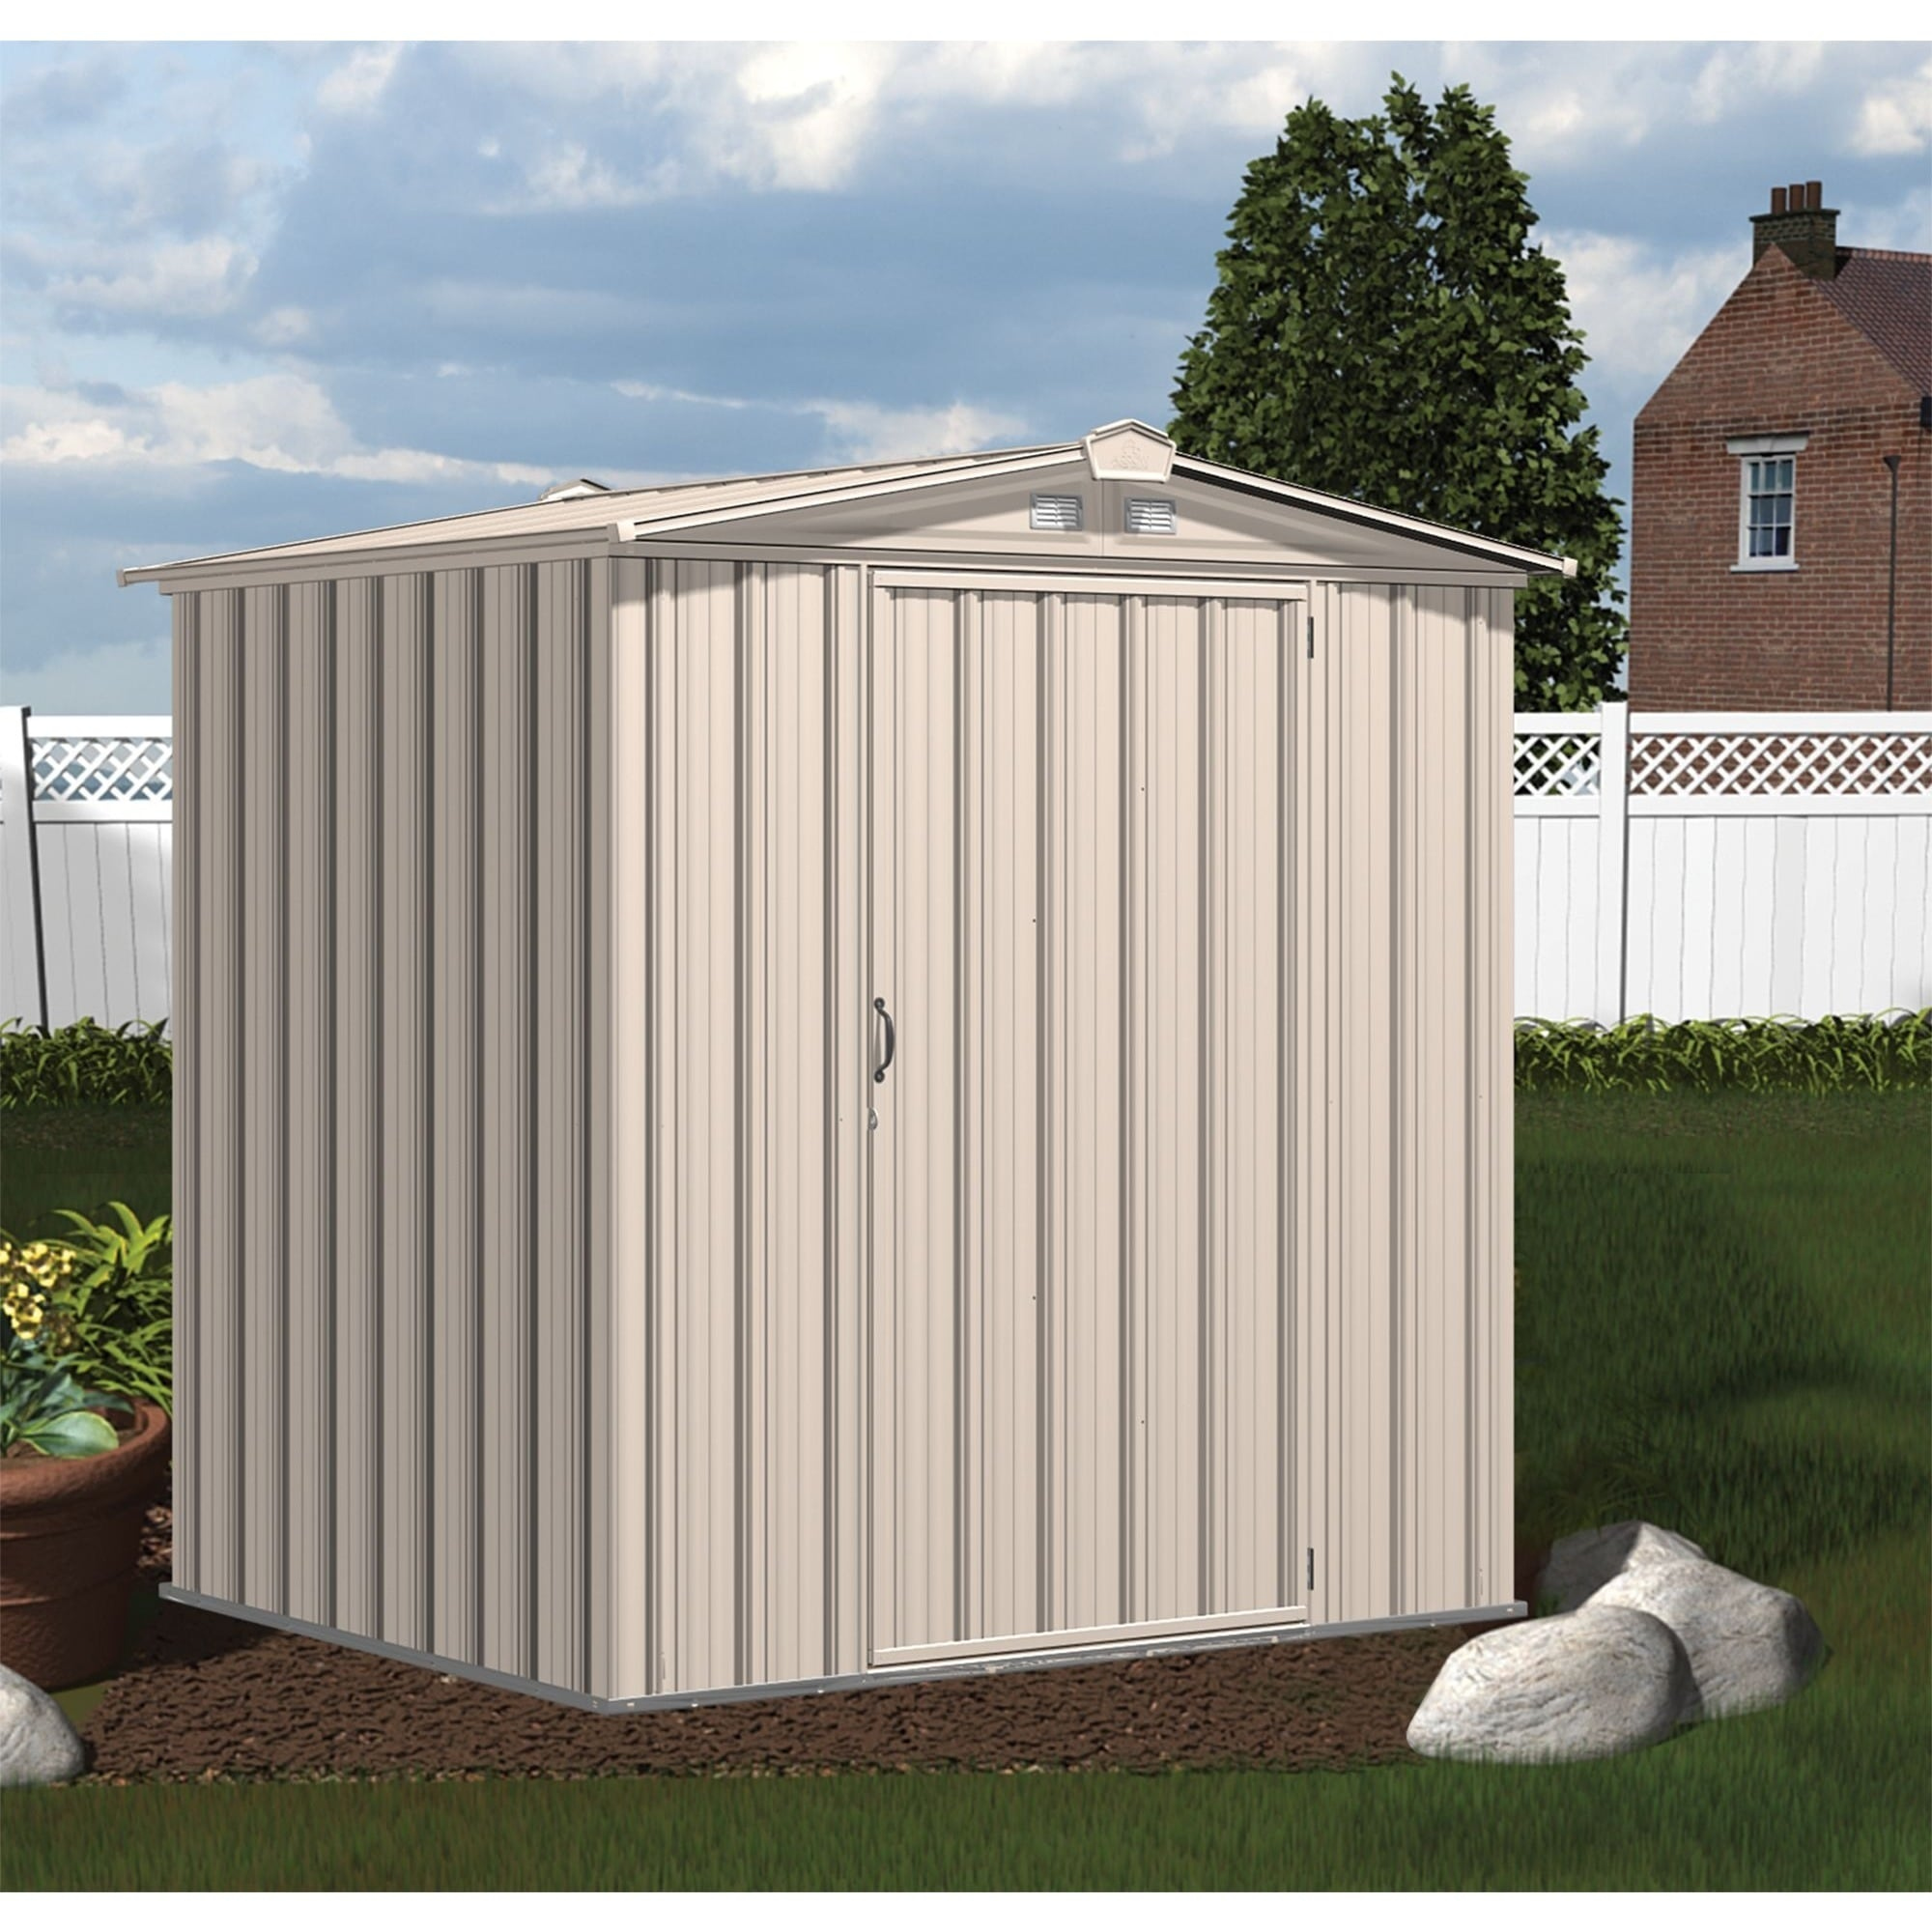 Steel Storage Sheds Arrow Sheds Ezee Shed Galvanized Steel Storage Shed